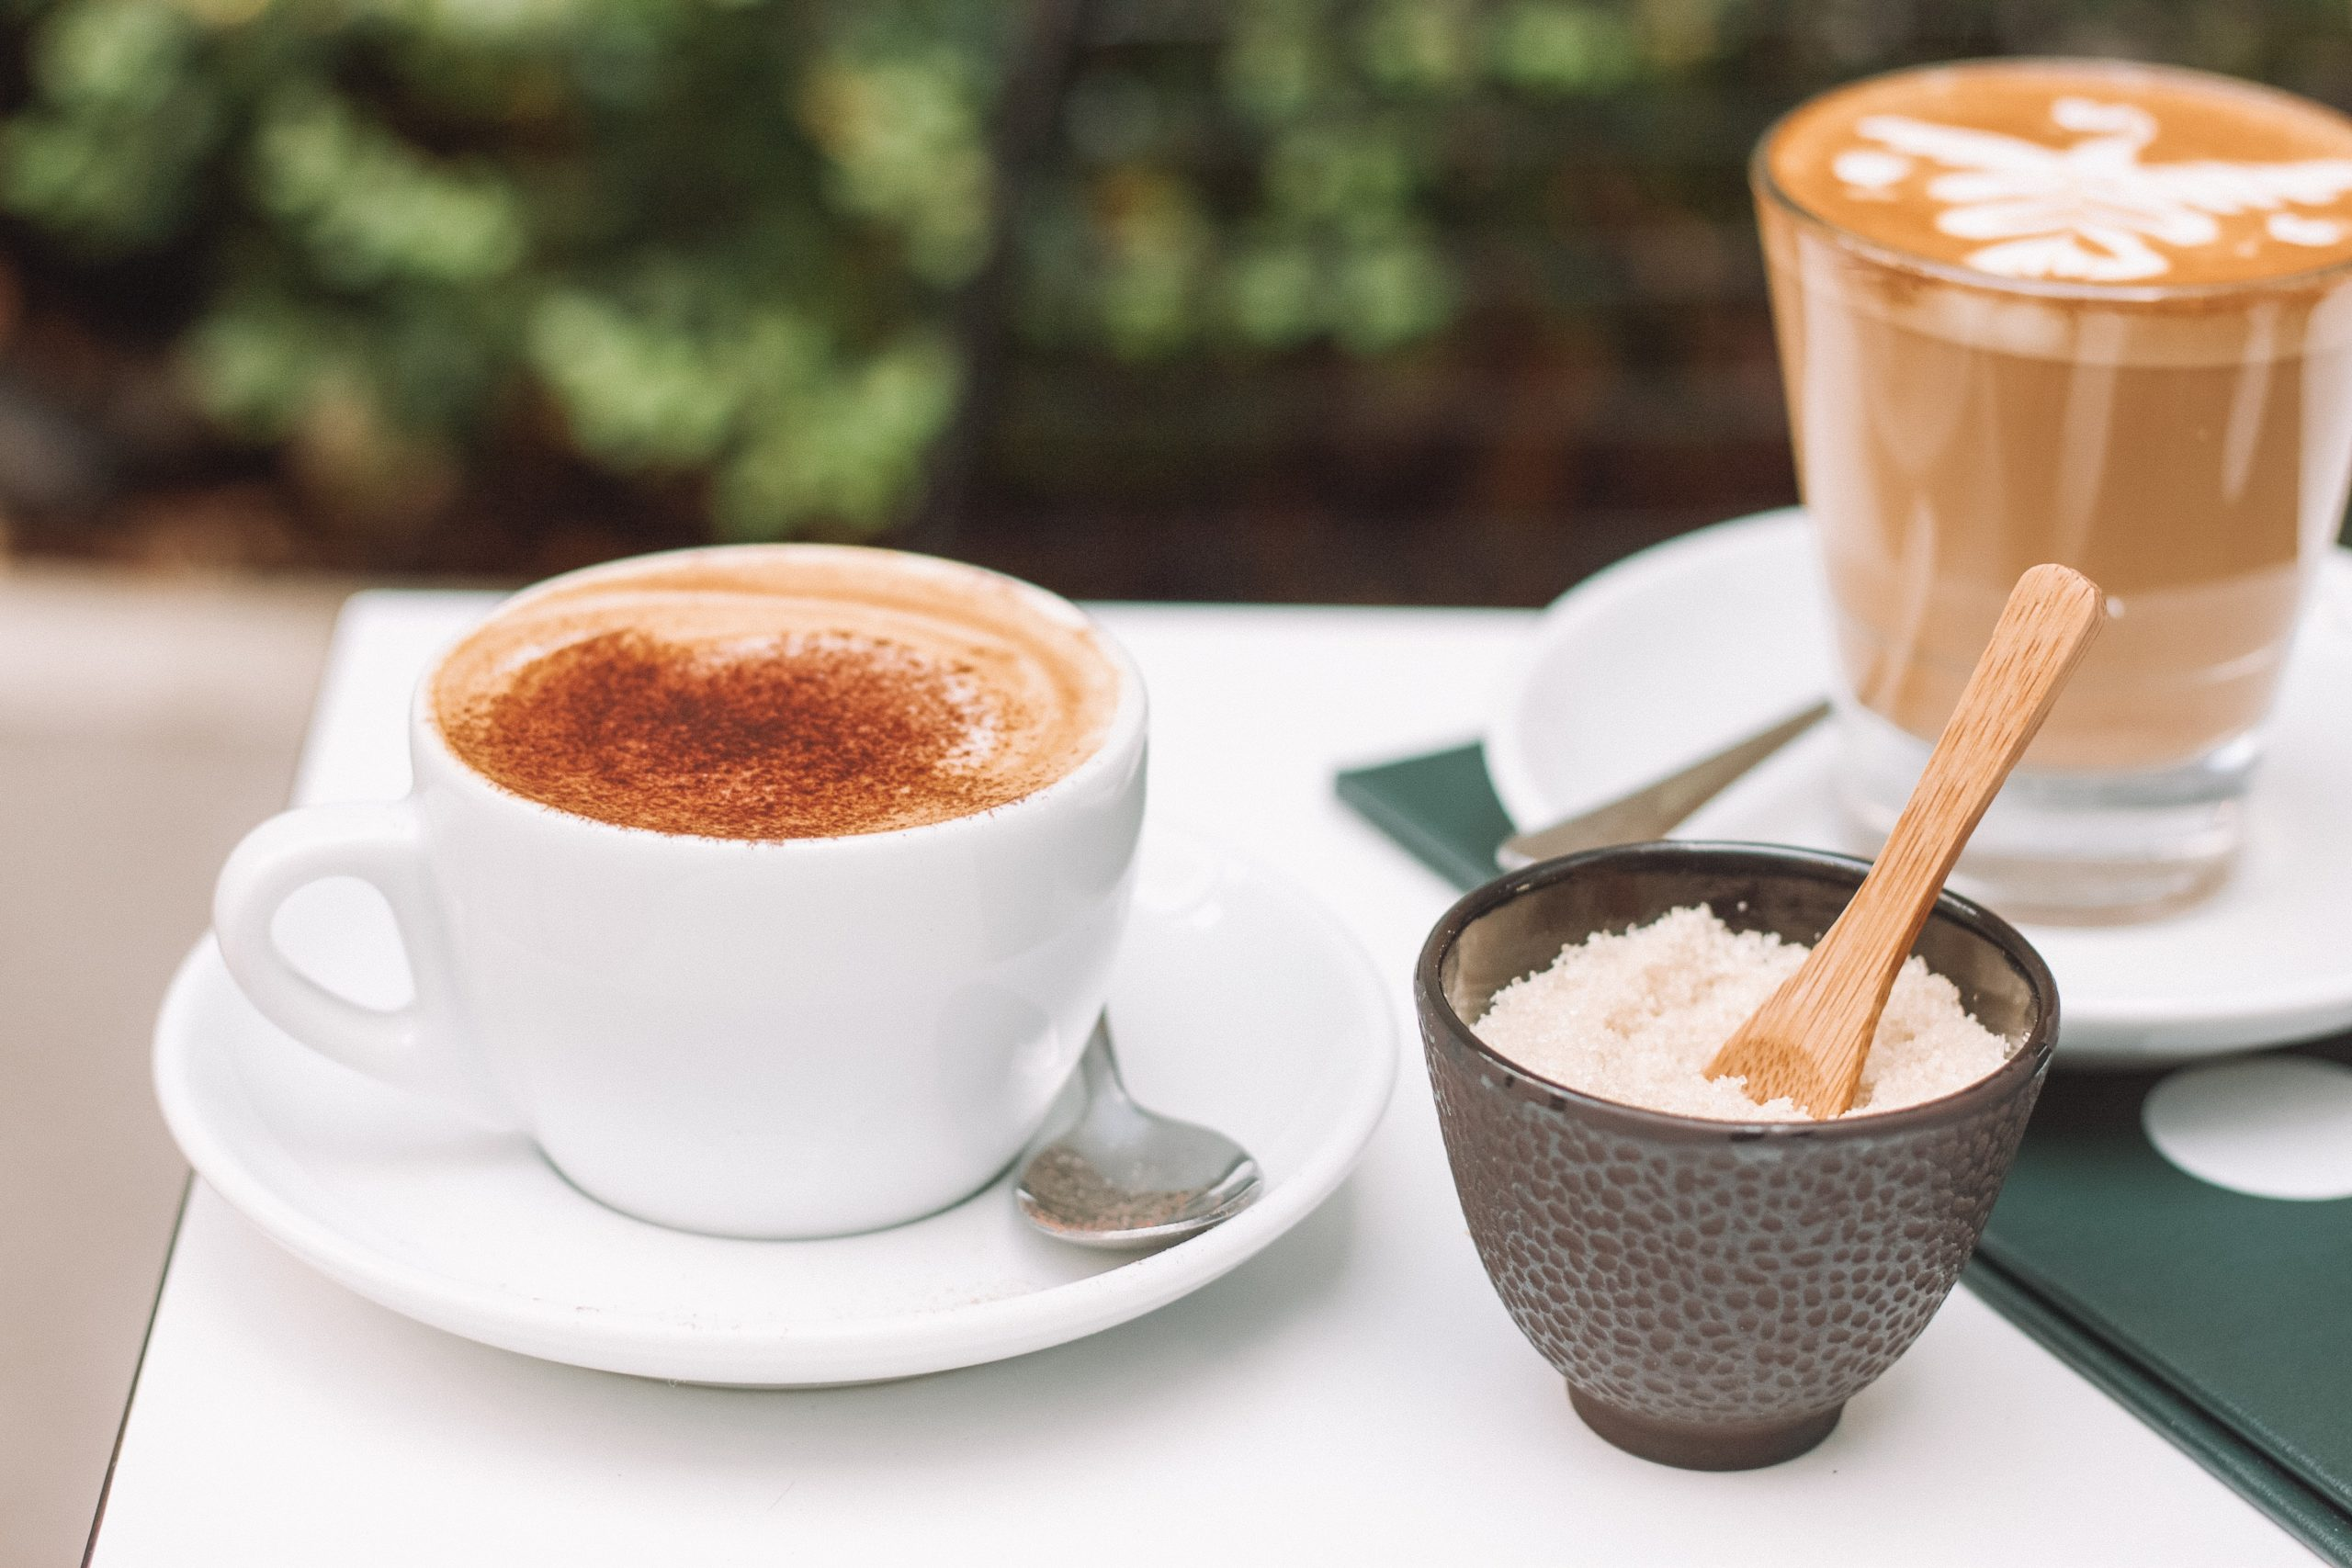 a bowl of sugar placed next to a cup of coffee